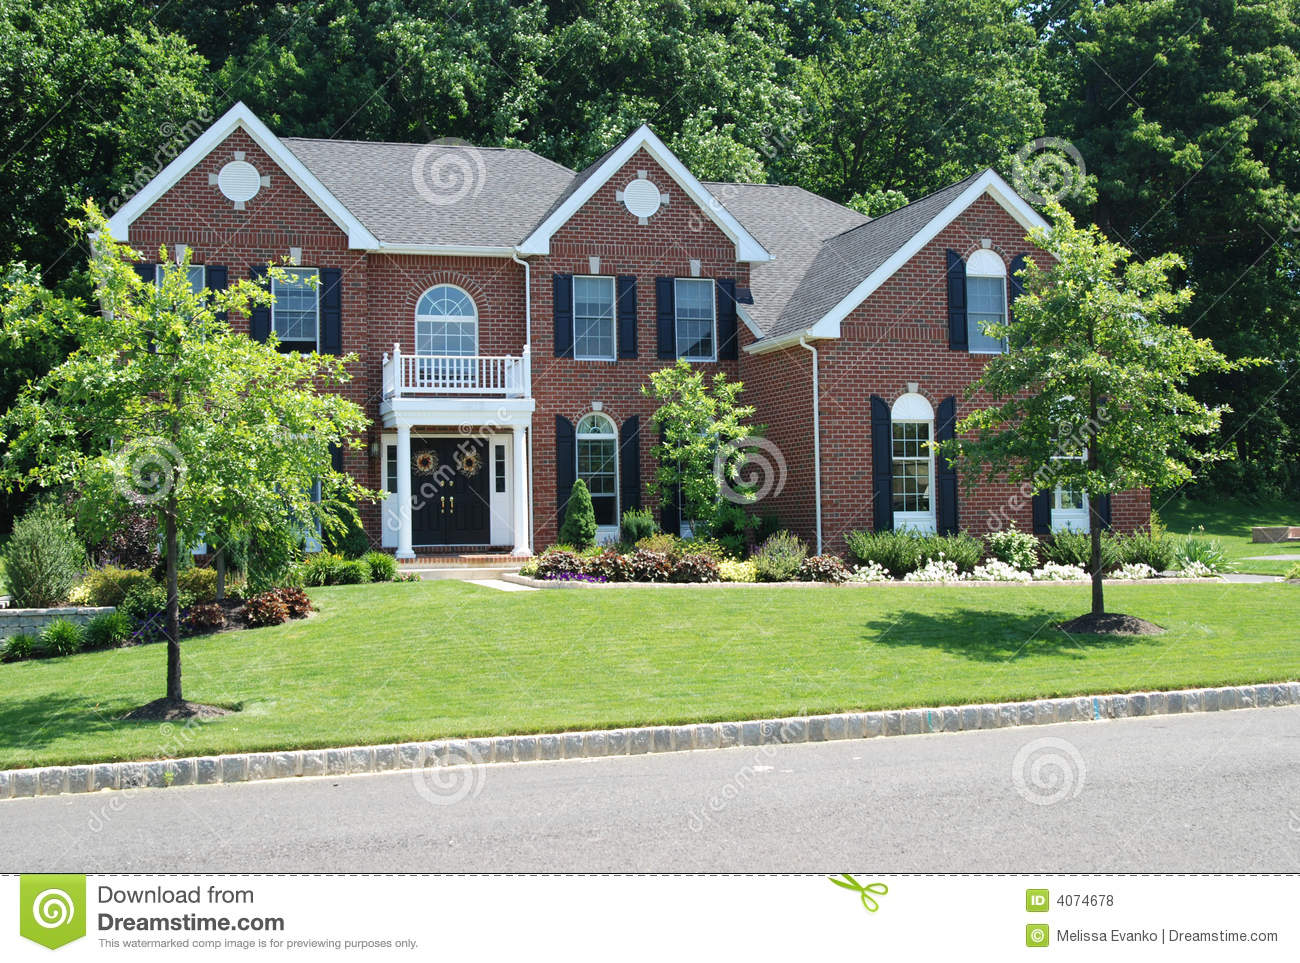 Nice house royalty free stock photos image 4074678 for Nice house images